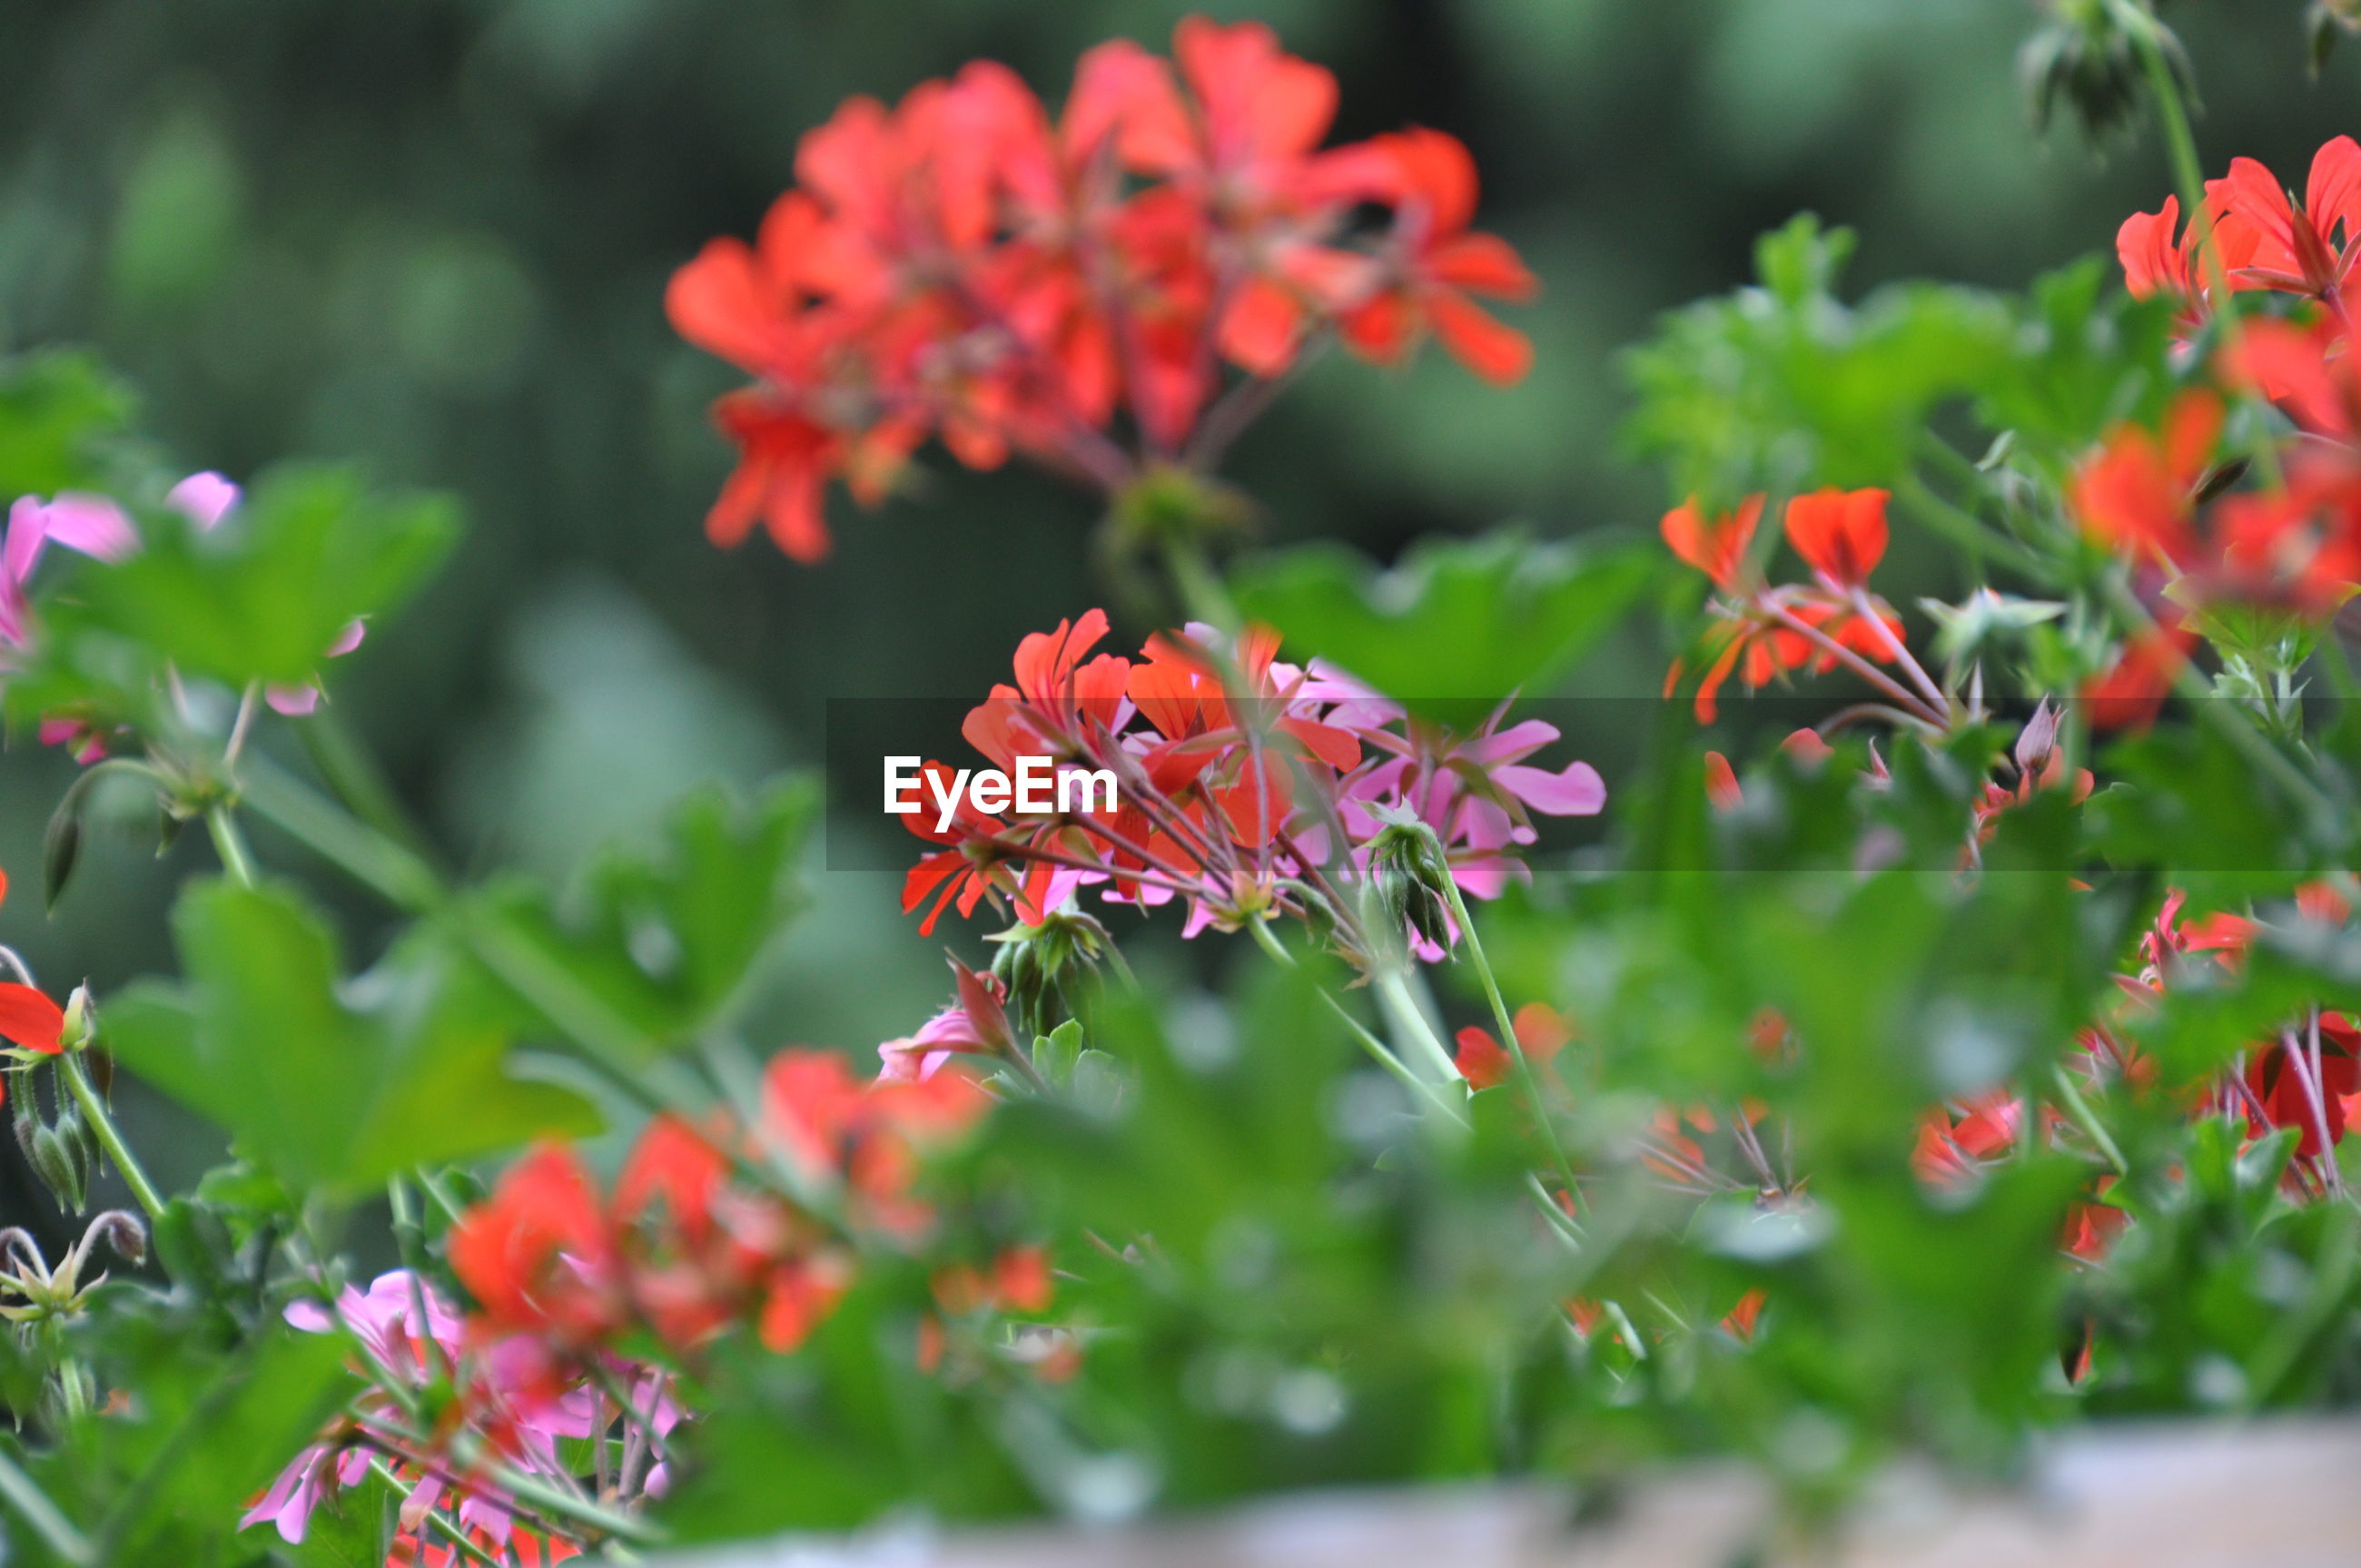 CLOSE-UP OF RED FLOWERS BLOOMING IN PARK